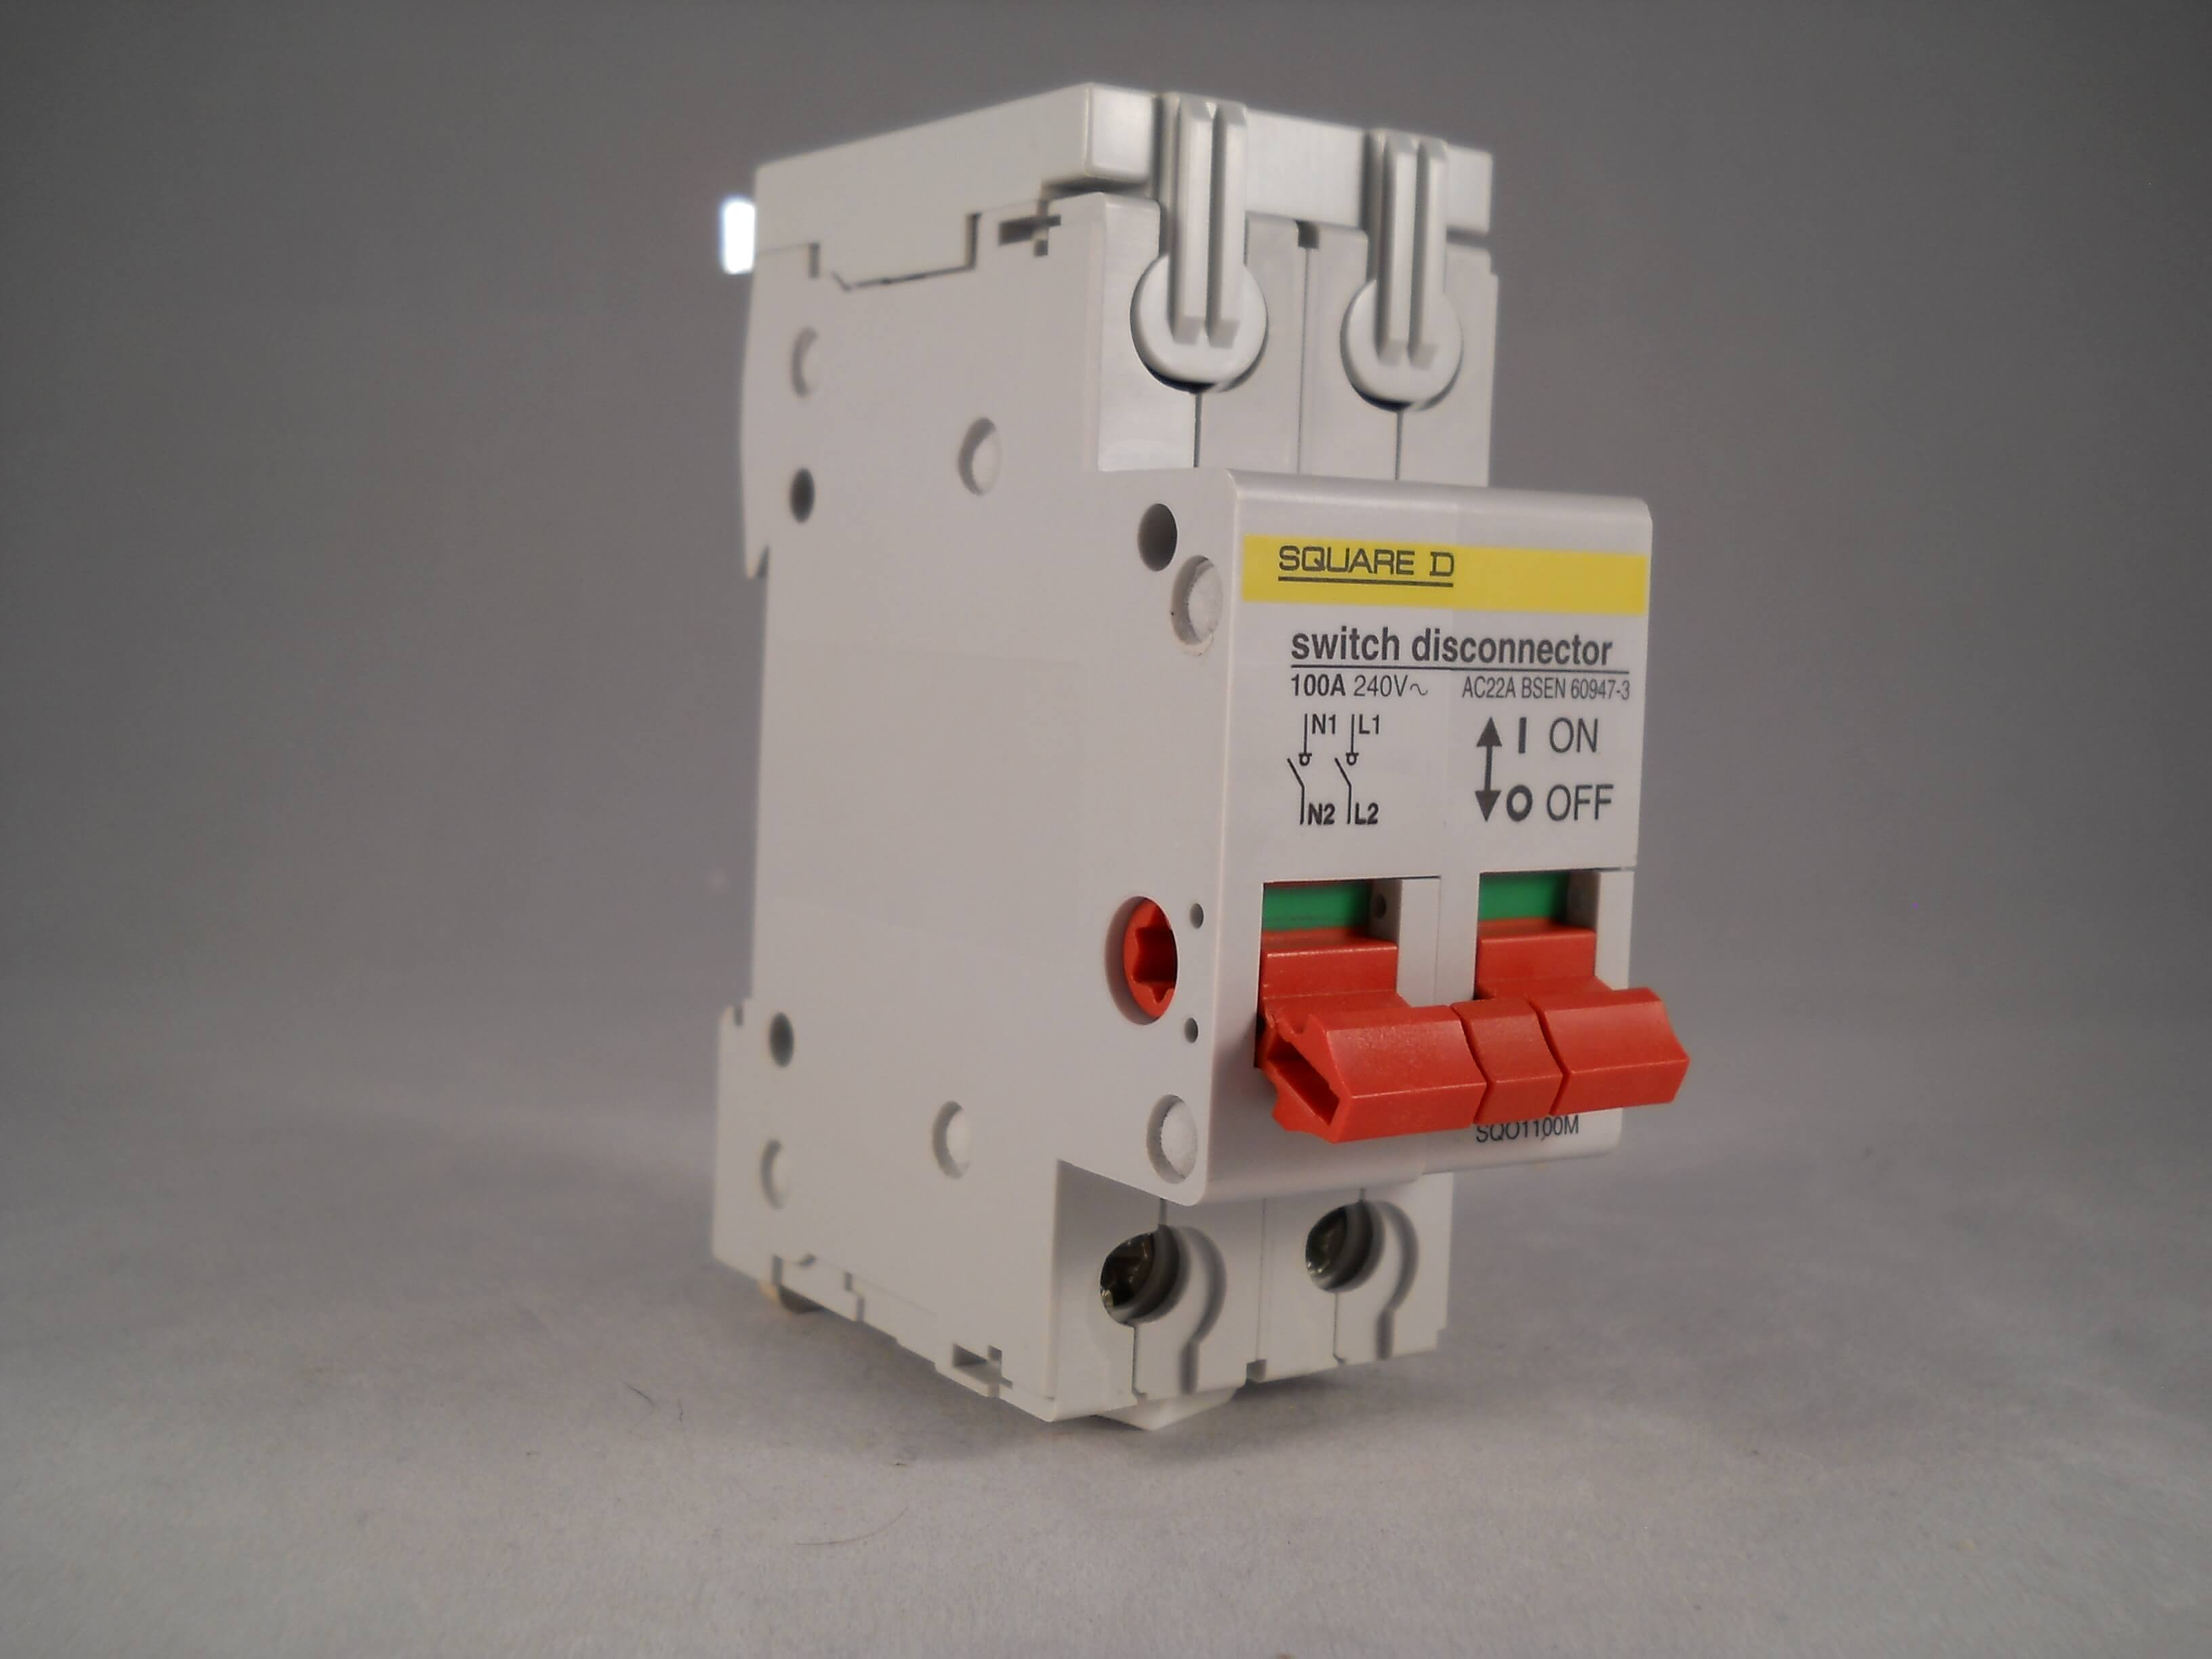 square d sqo 100 amp main switch 100a double pole isolator qwikline rh willrose electrical co uk Duramax Fuse Box Universal Universal 12 Volt Fuse Board